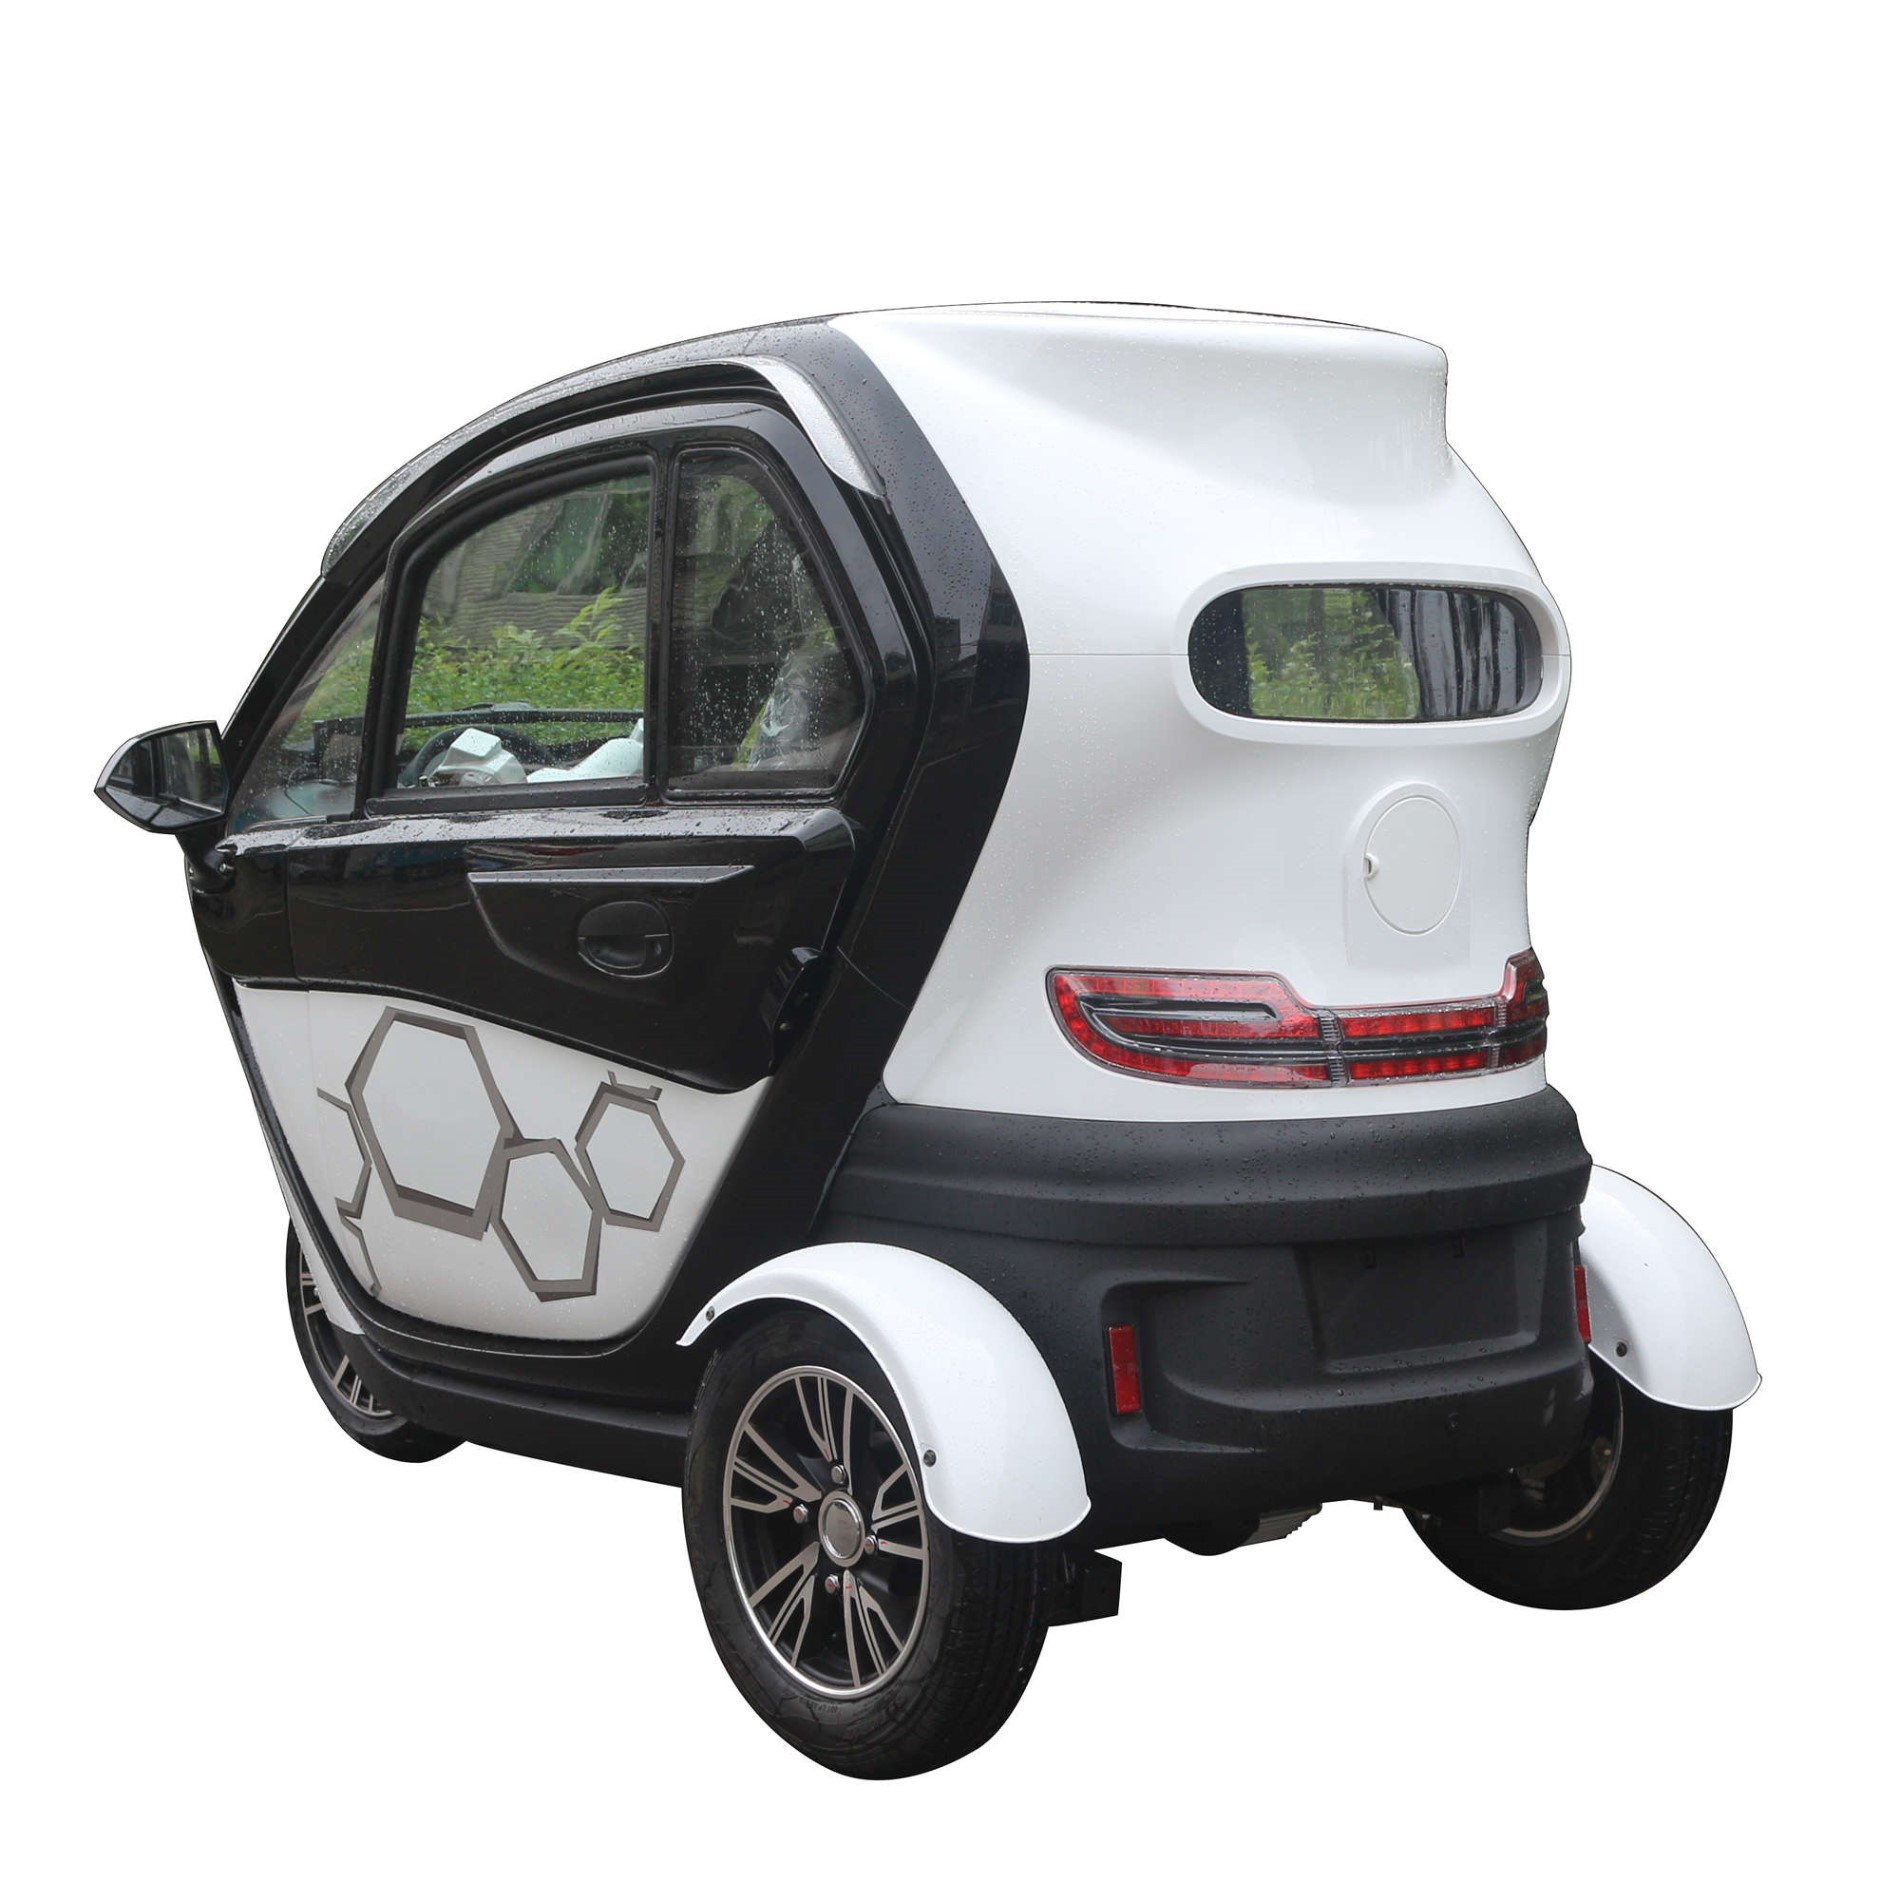 High quality Closed Passenger Electric Auto Rickshaw Quotes,China Closed Passenger Electric Auto Rickshaw Factory,Closed Passenger Electric Auto Rickshaw Purchasing